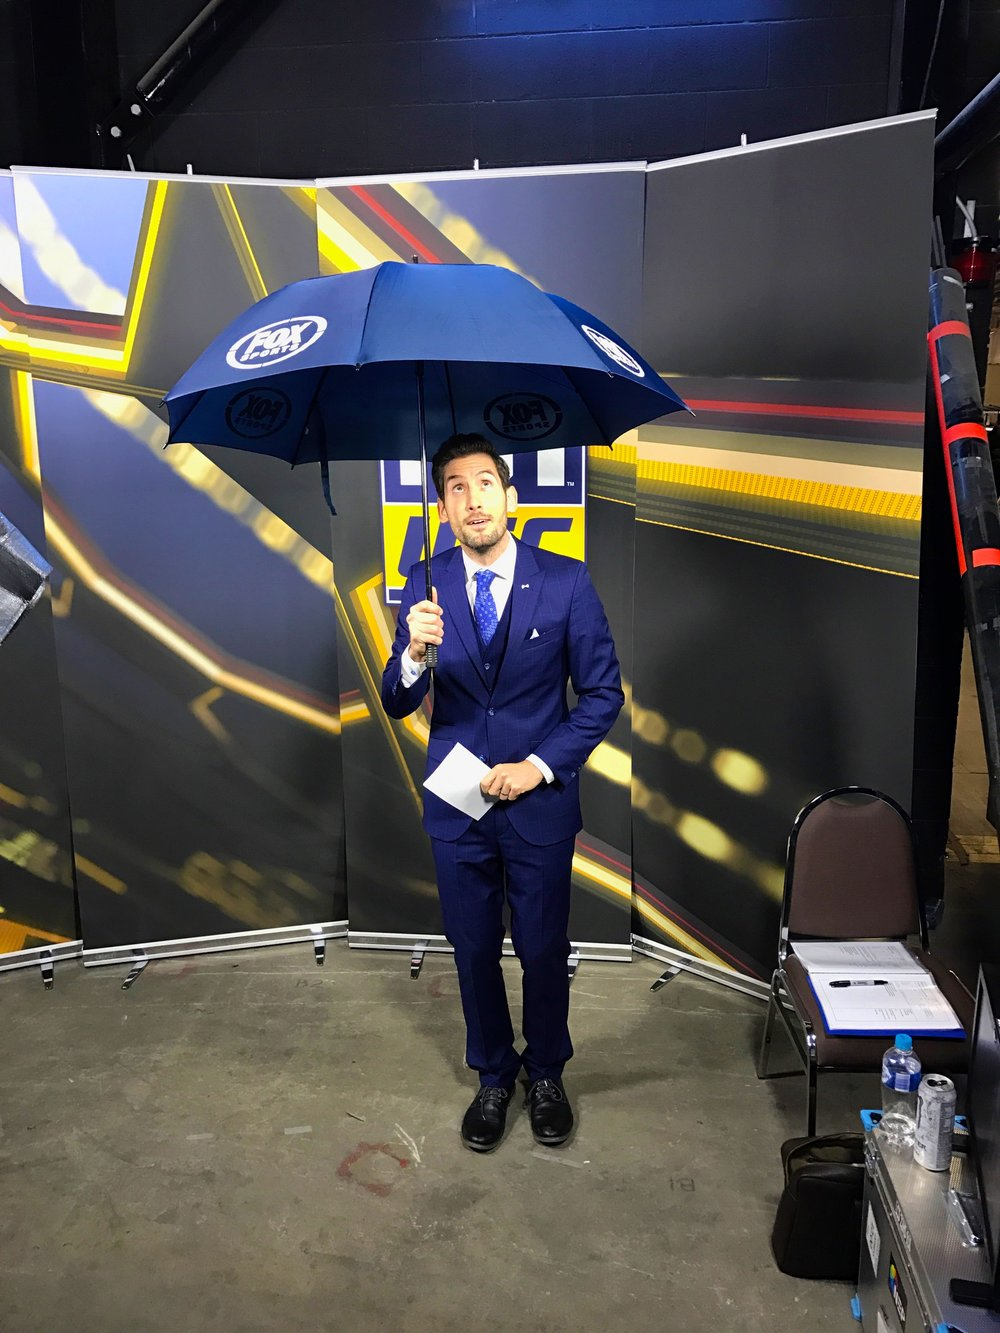 umbrella pic.JPG